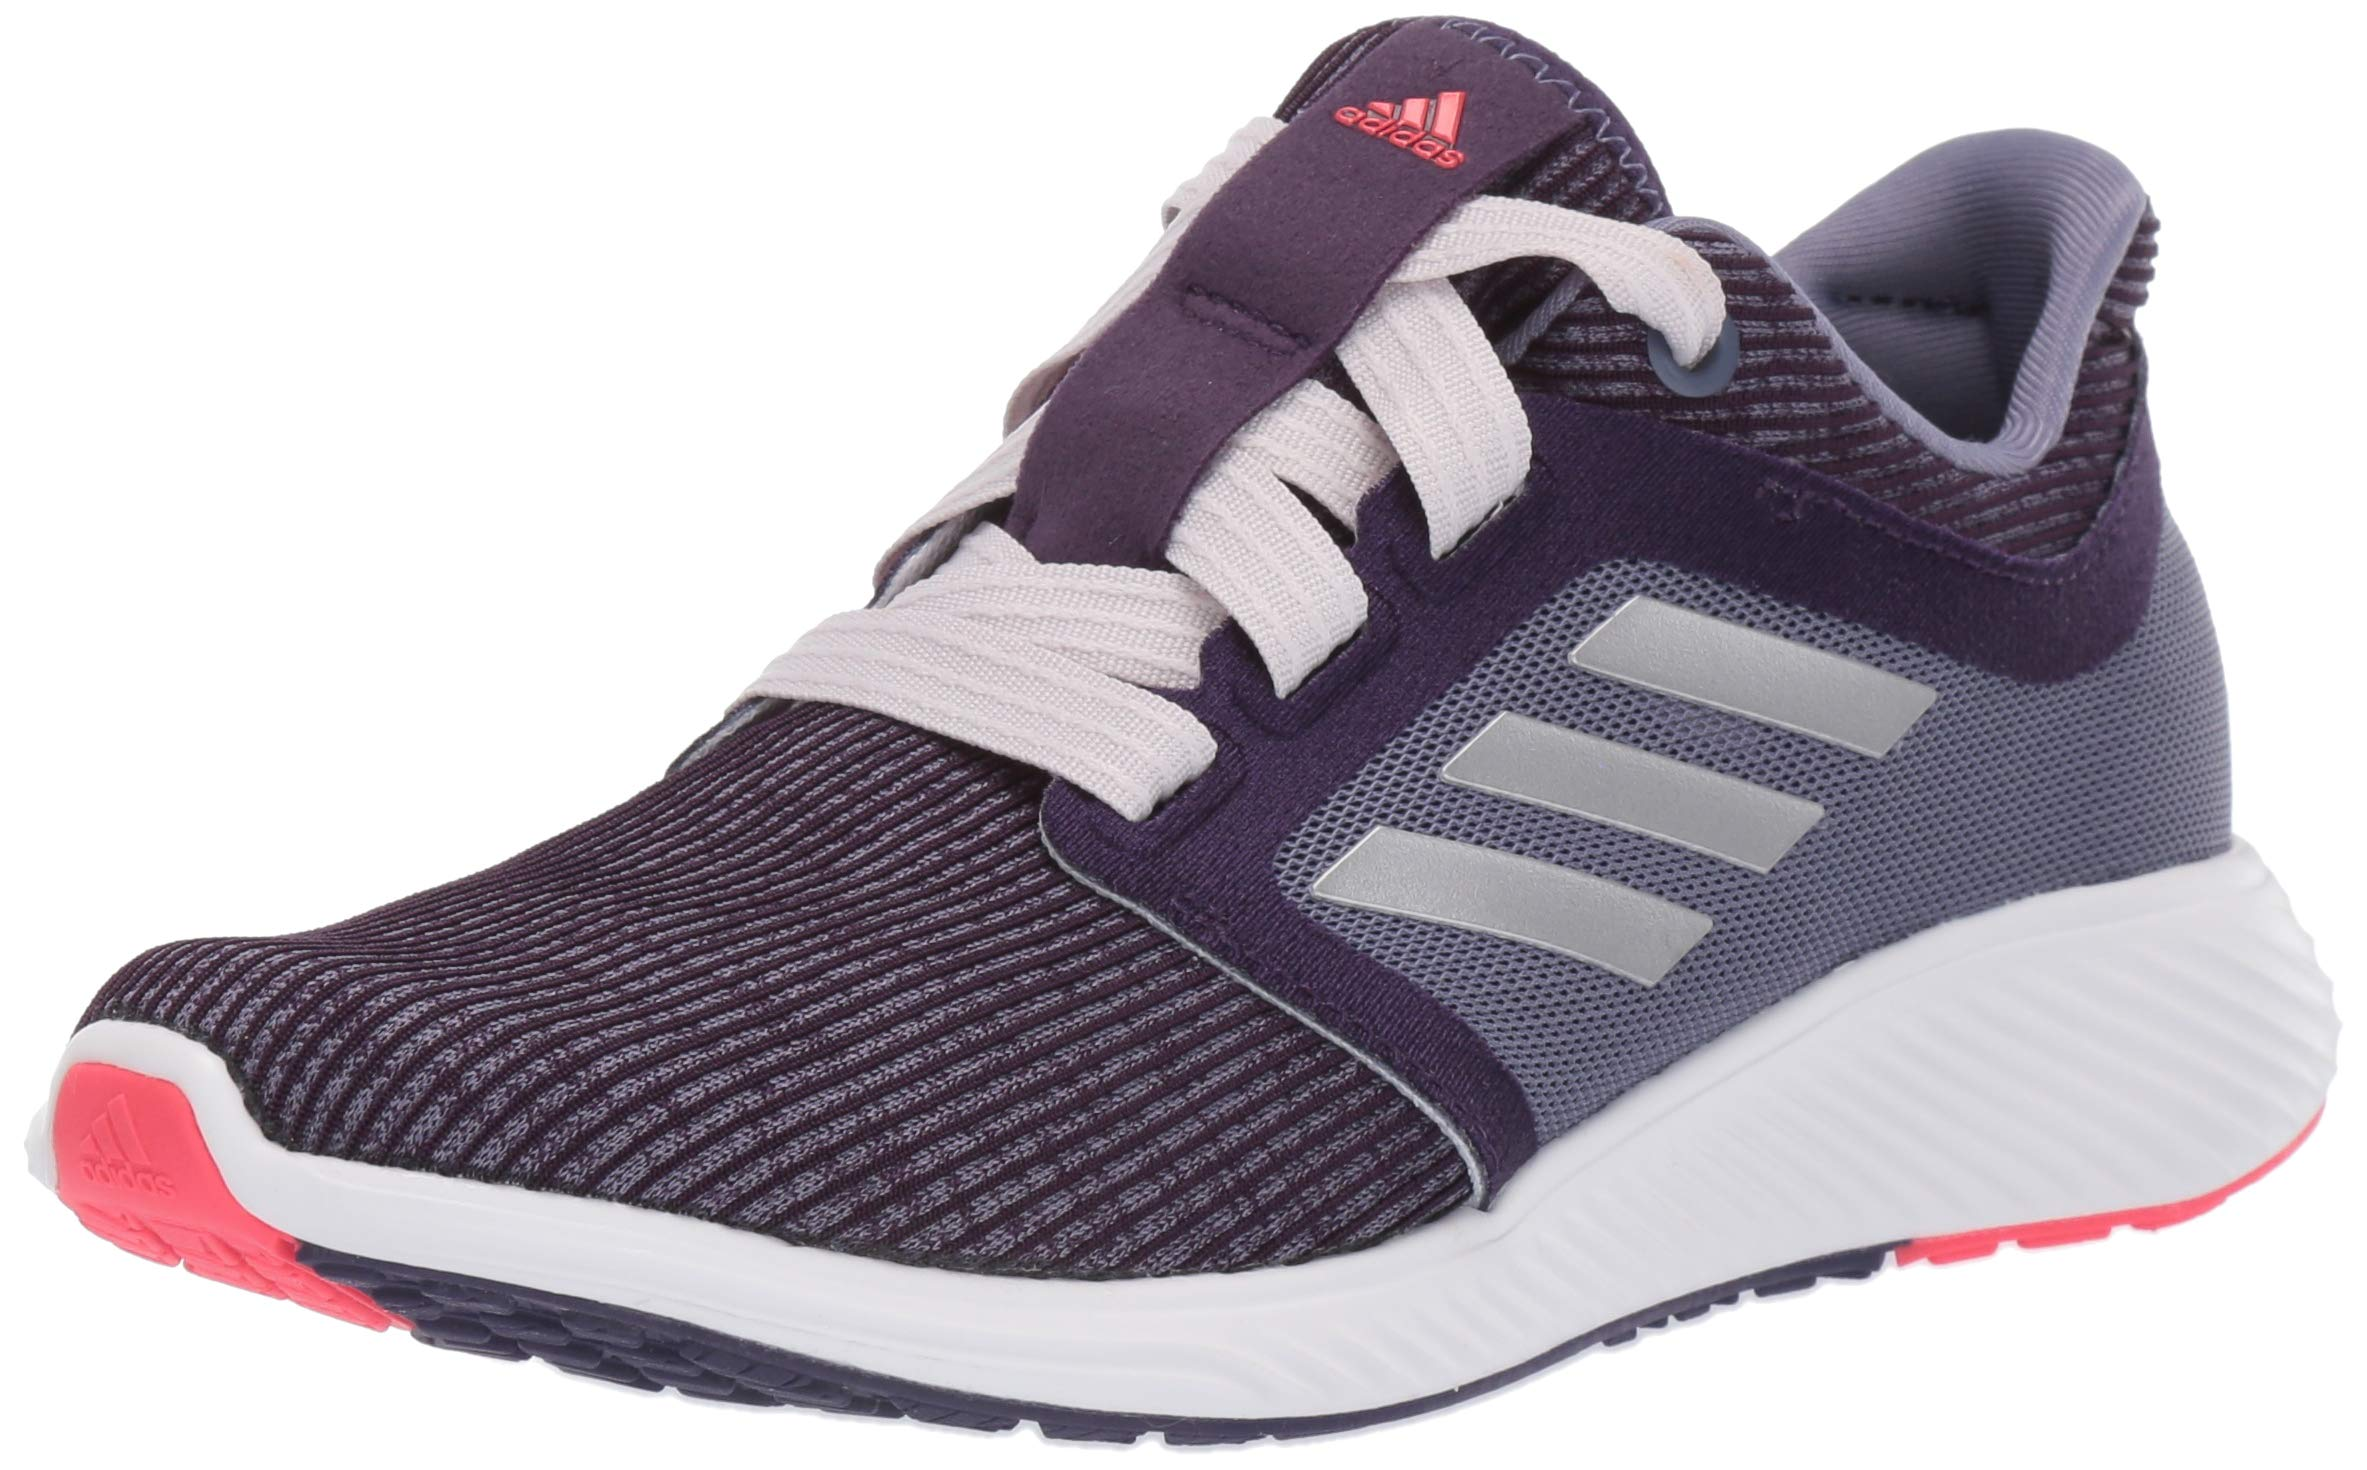 adidas Women's Edge Lux 3, Legend Purple/raw Indigo/Shock red 6 M US